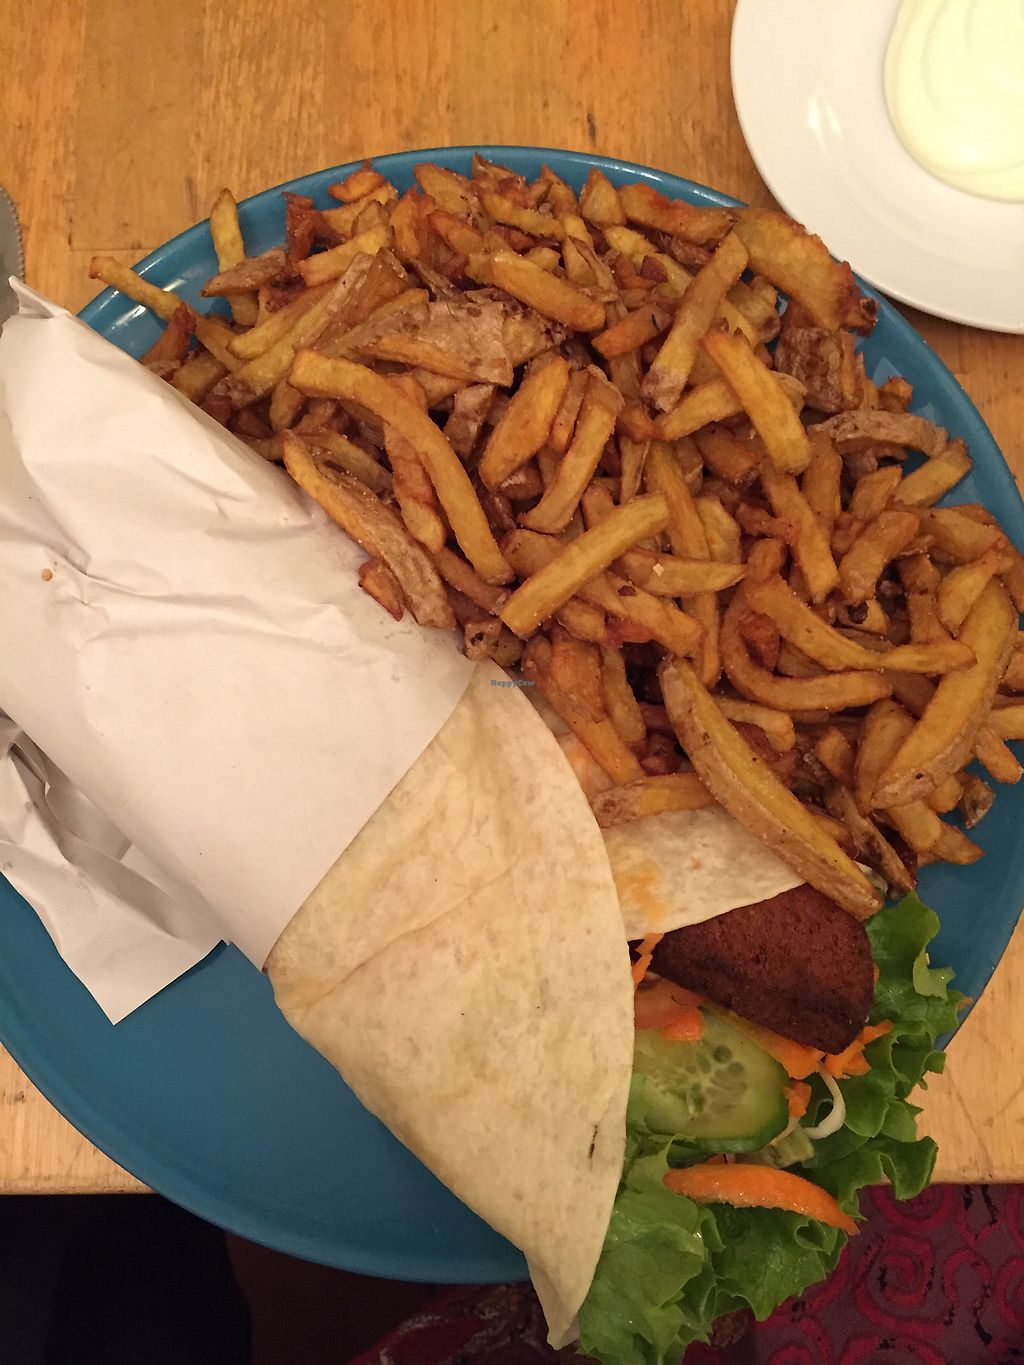 """Photo of Yoyo Foodworld  by <a href=""""/members/profile/MatildeBrixLajer"""">MatildeBrixLajer</a> <br/>Bauverian wrap with fries <br/> February 16, 2018  - <a href='/contact/abuse/image/14960/359983'>Report</a>"""